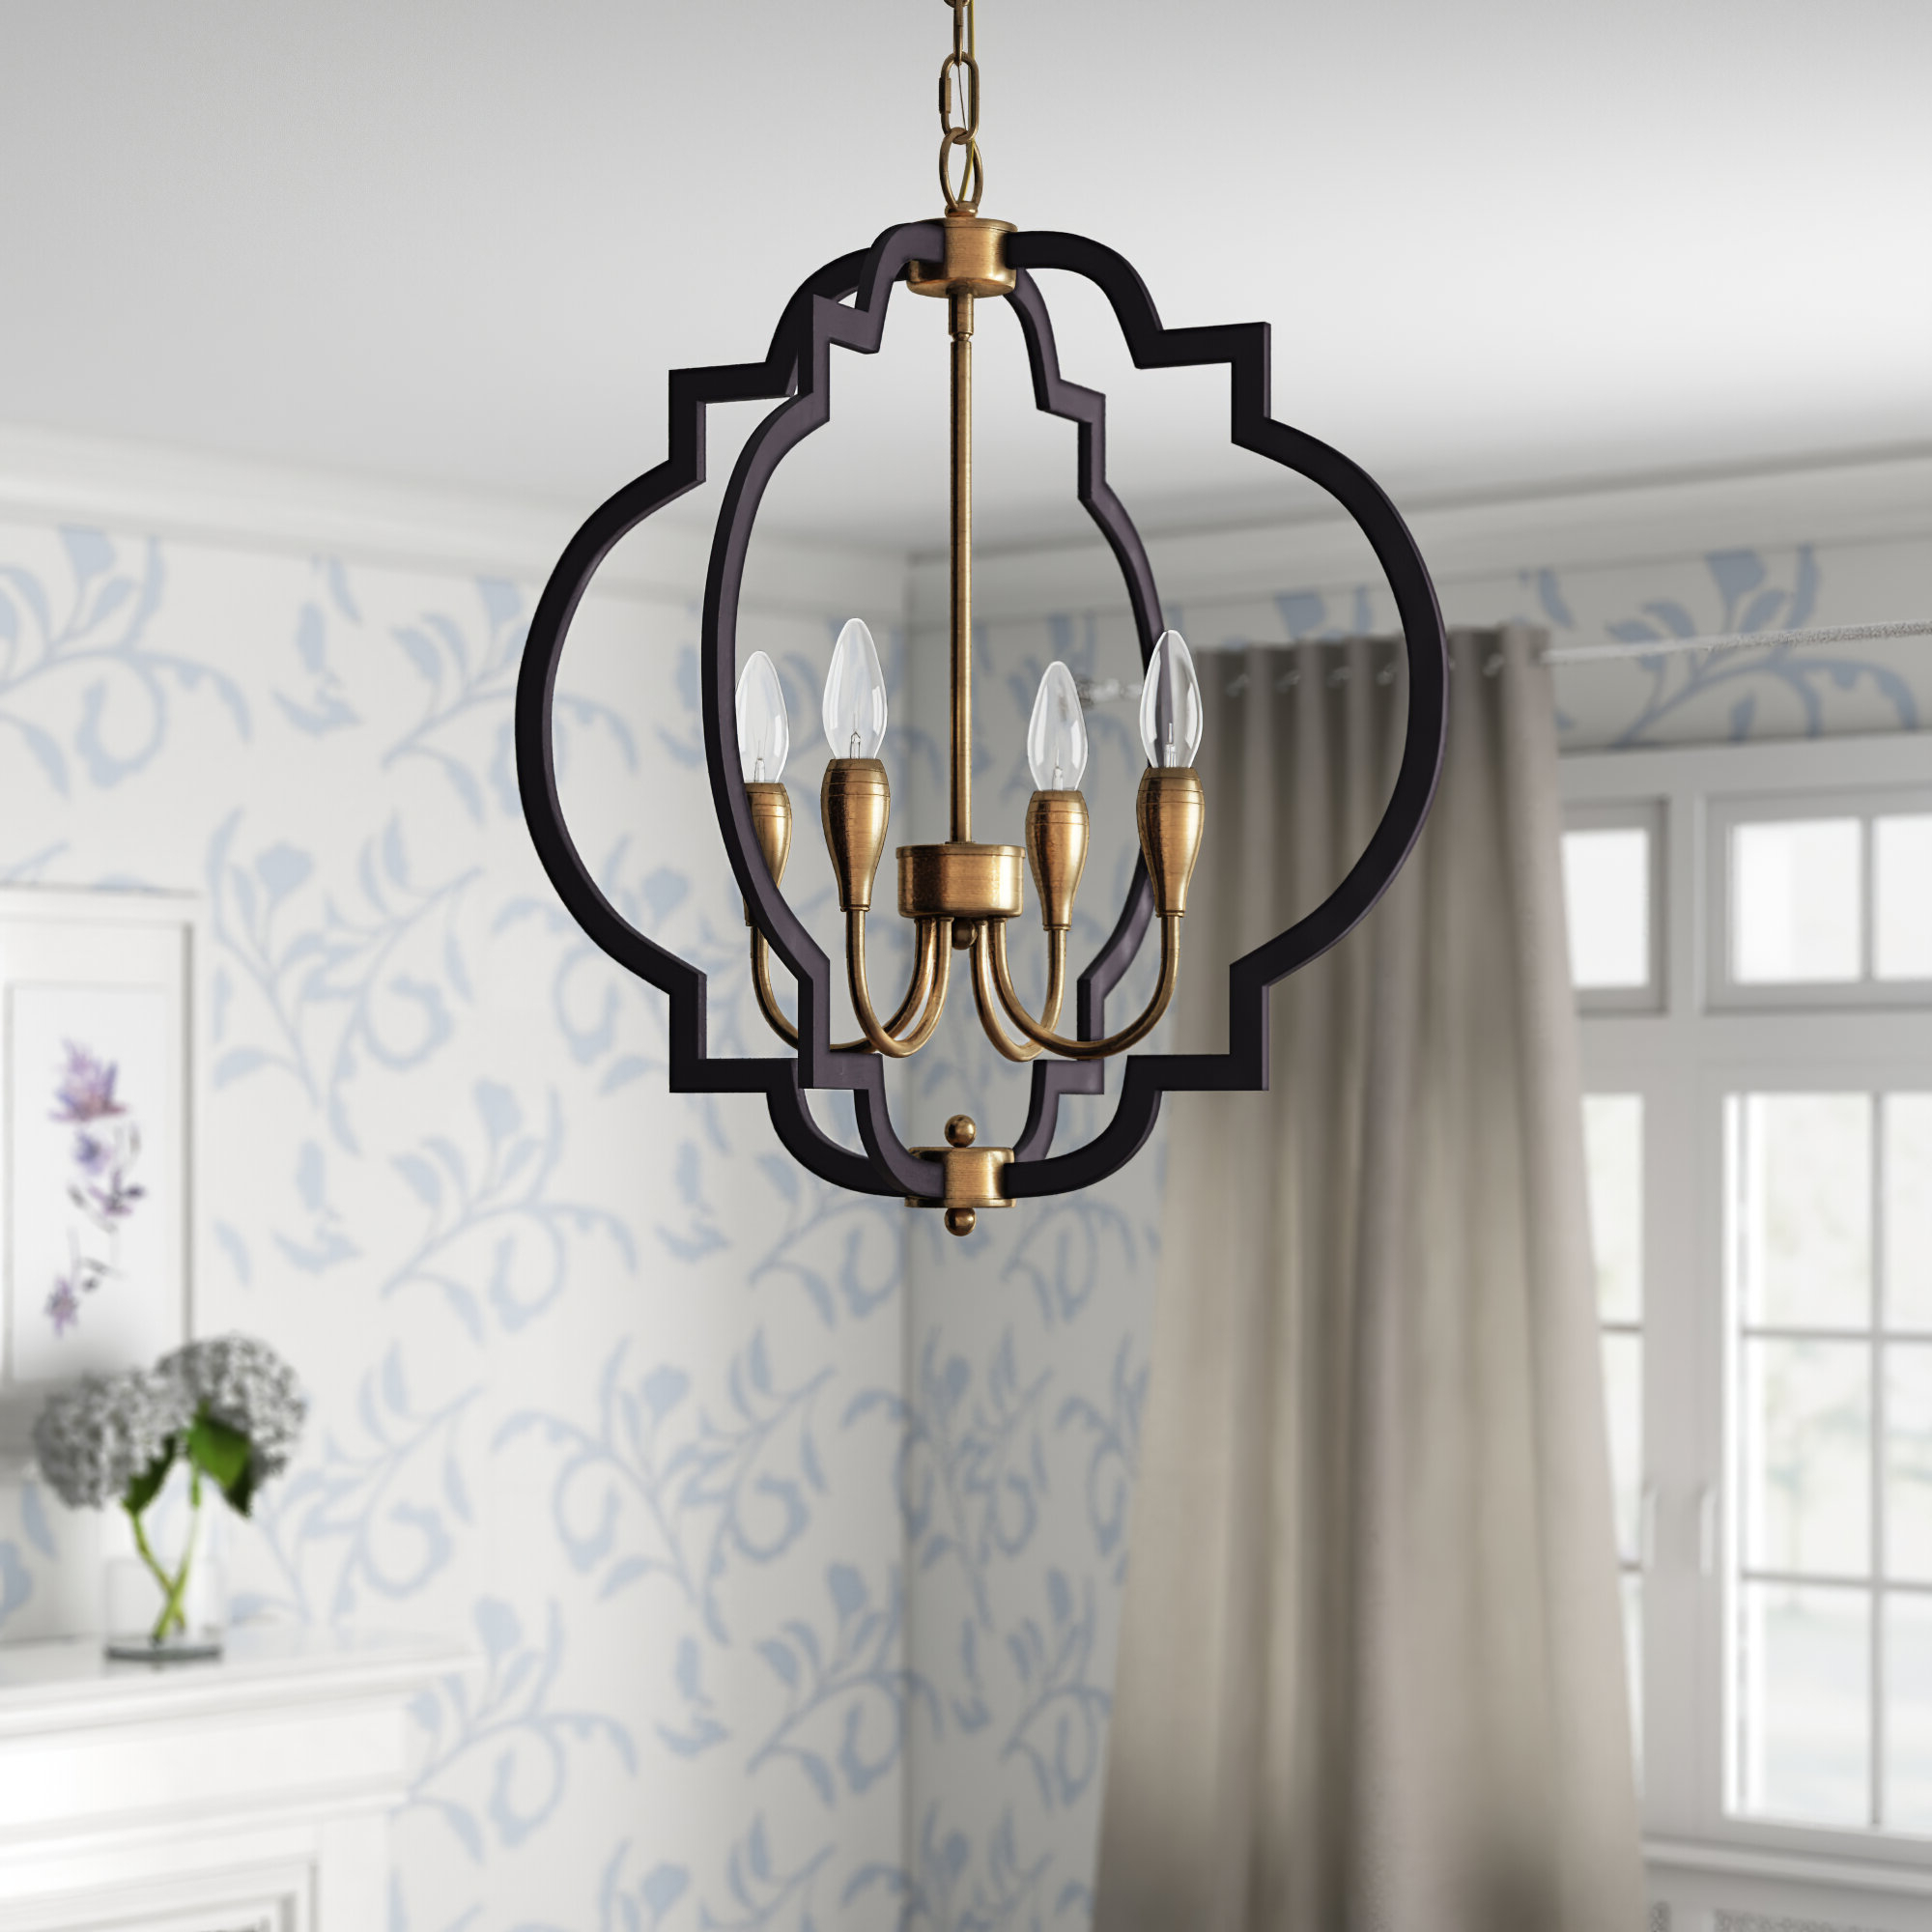 Astin 4 Light Geometric Chandelier Throughout Most Popular Lynn 6 Light Geometric Chandeliers (Gallery 5 of 20)